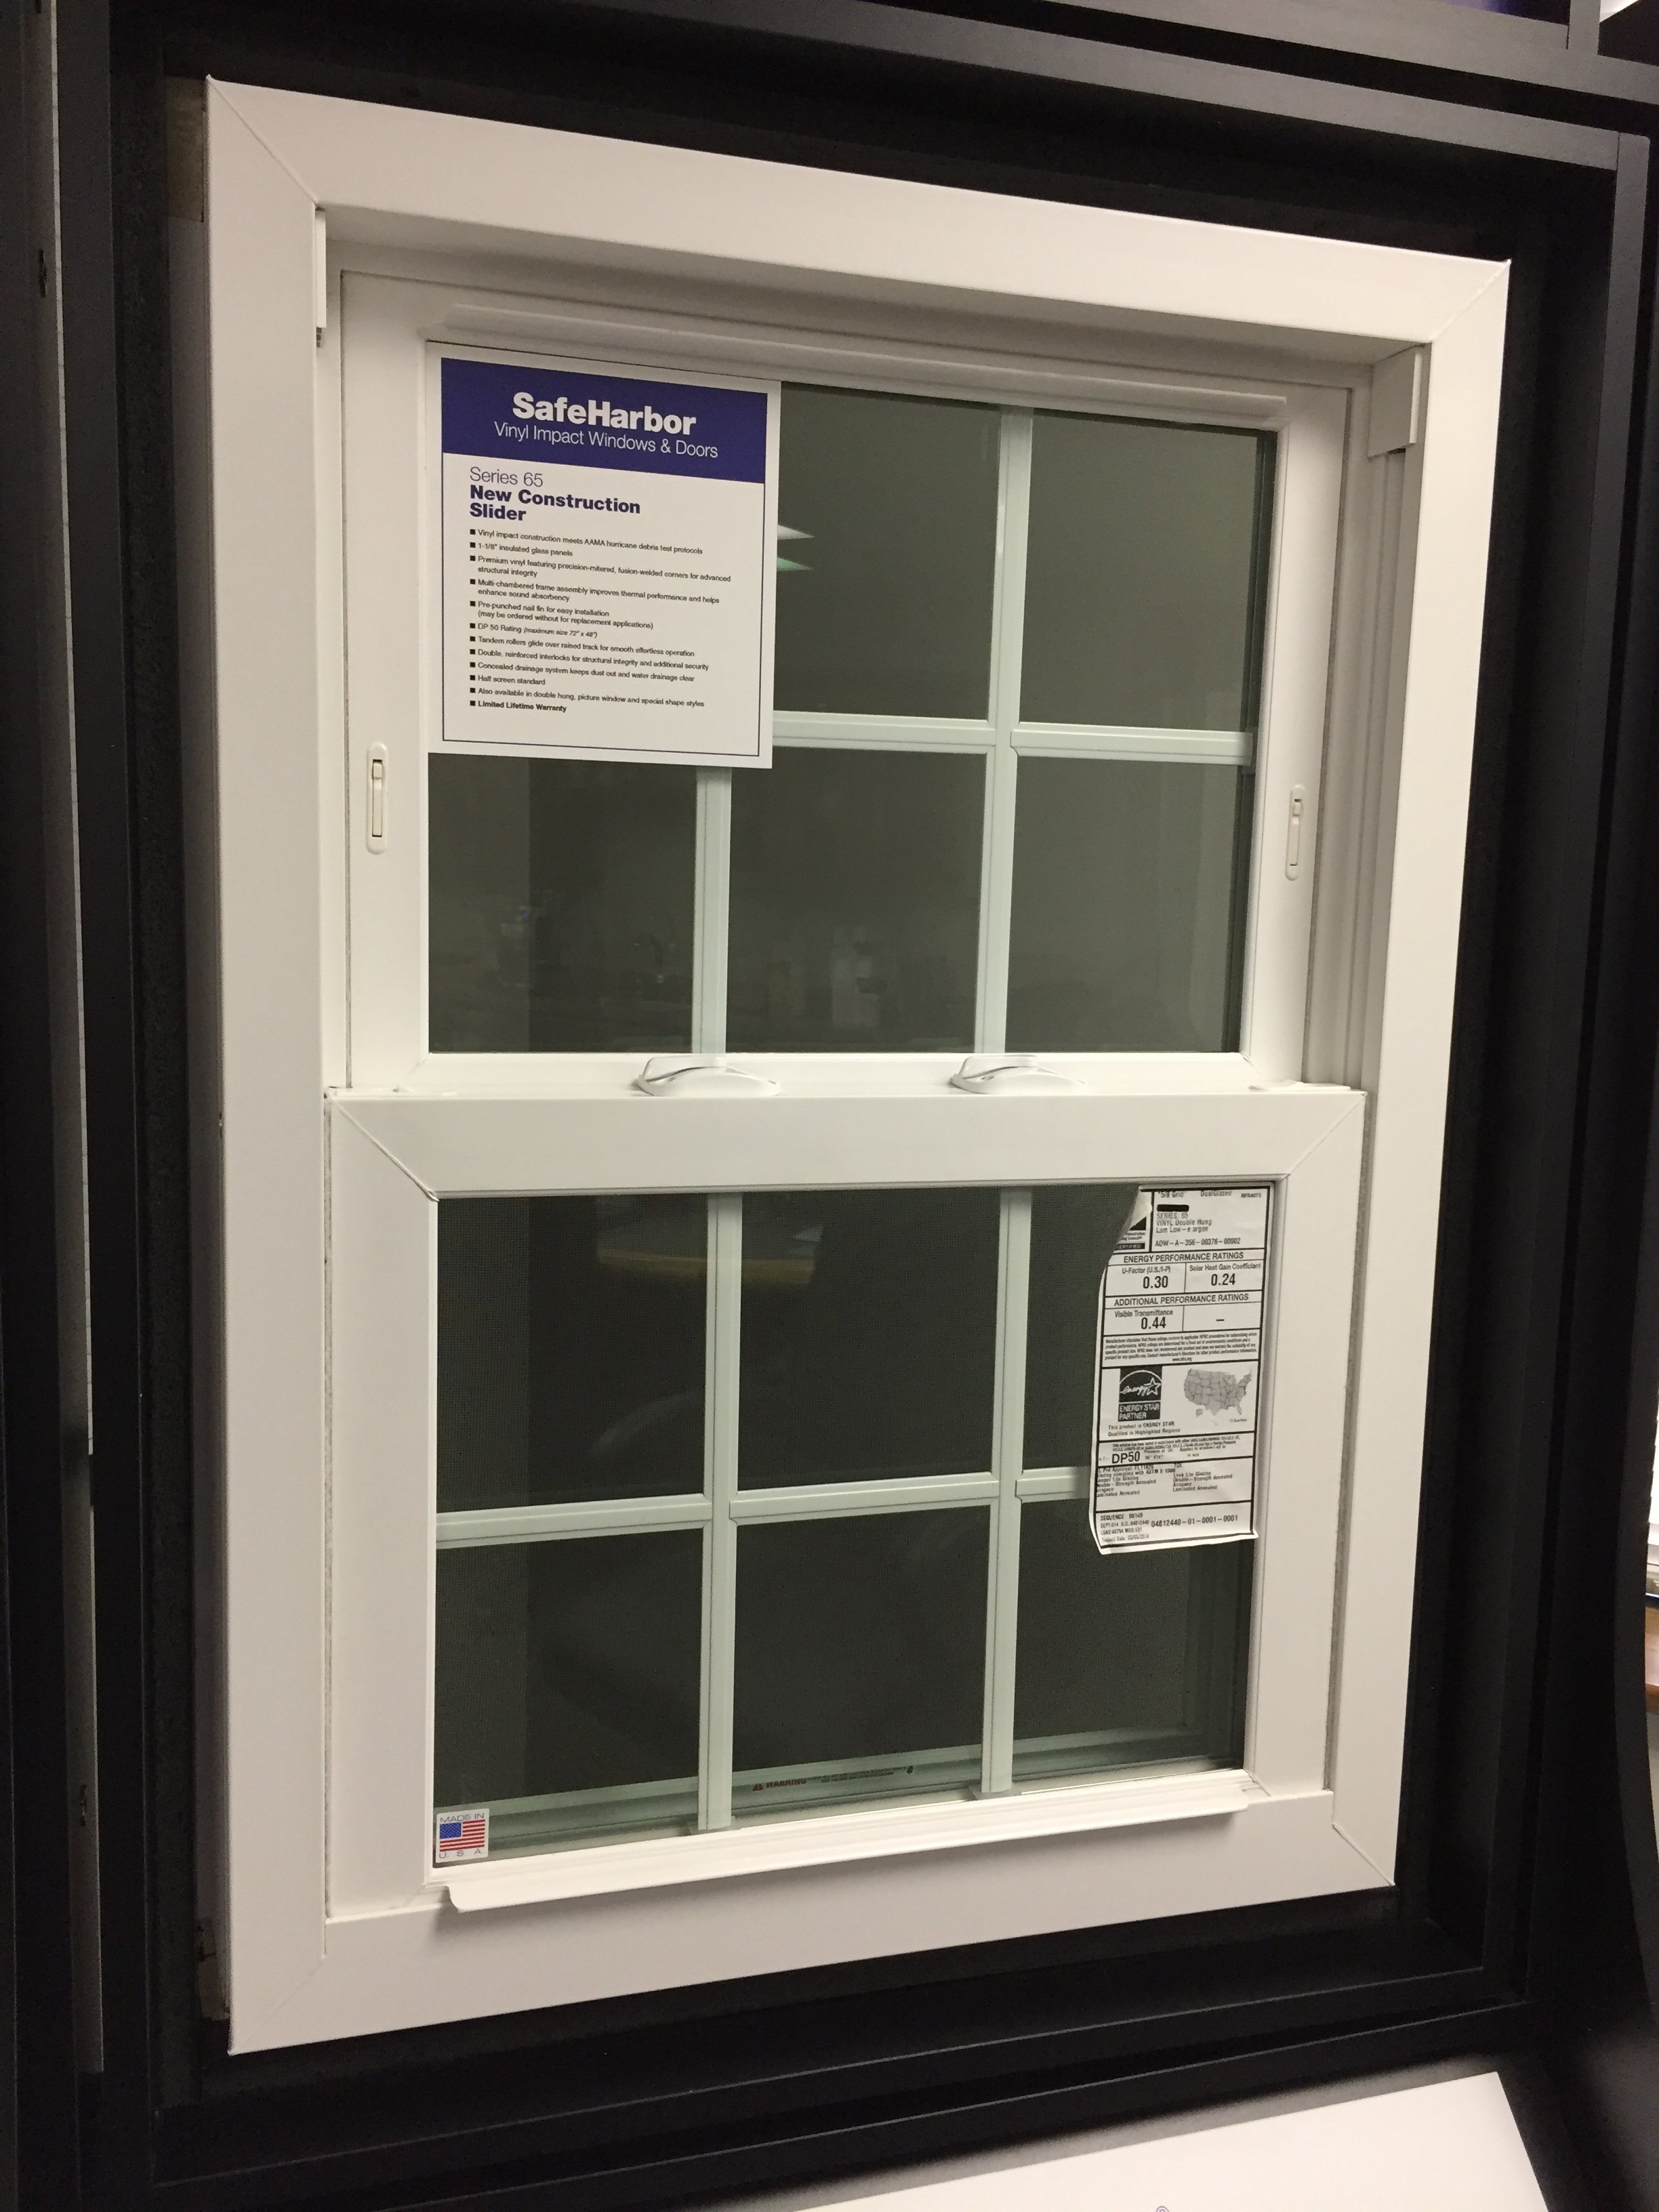 SafeHarbor Series 65 vinyl impact window